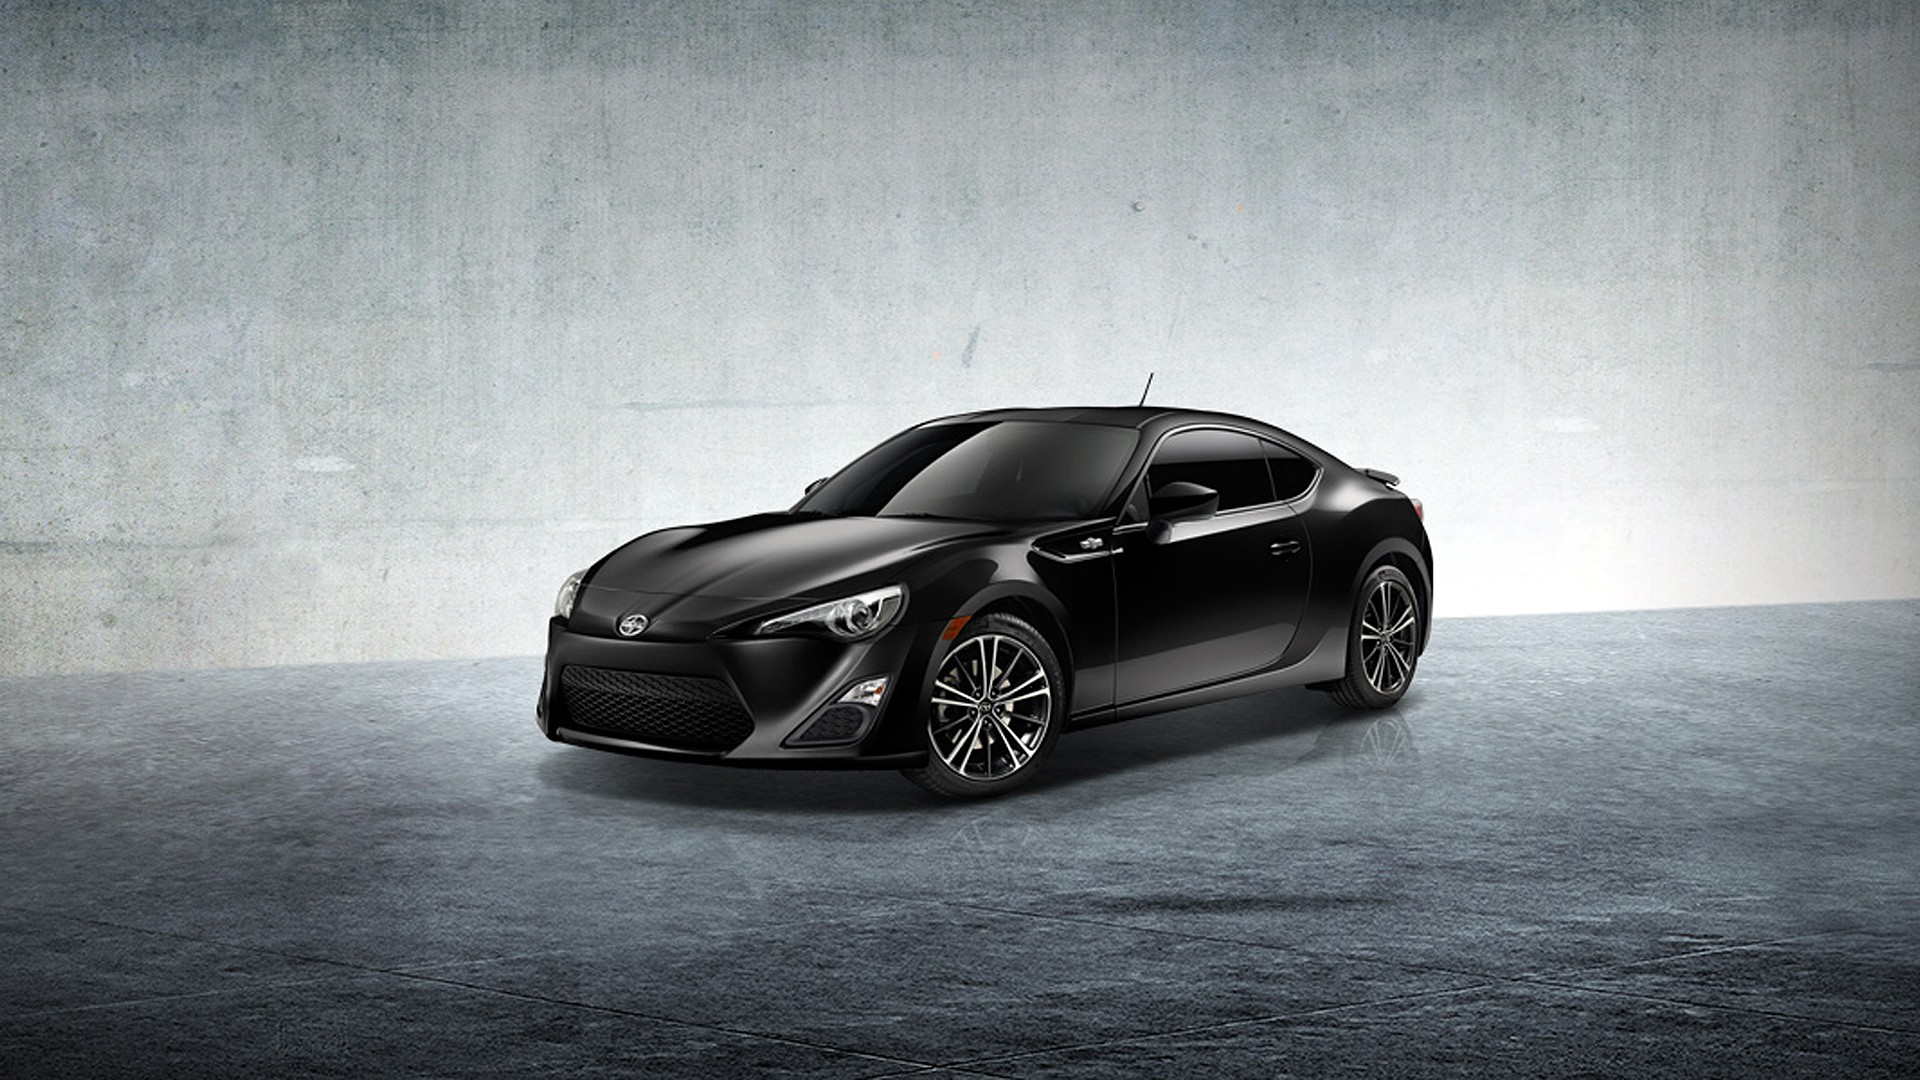 Scion Frs Wallpapers Posted By Michelle Peltier